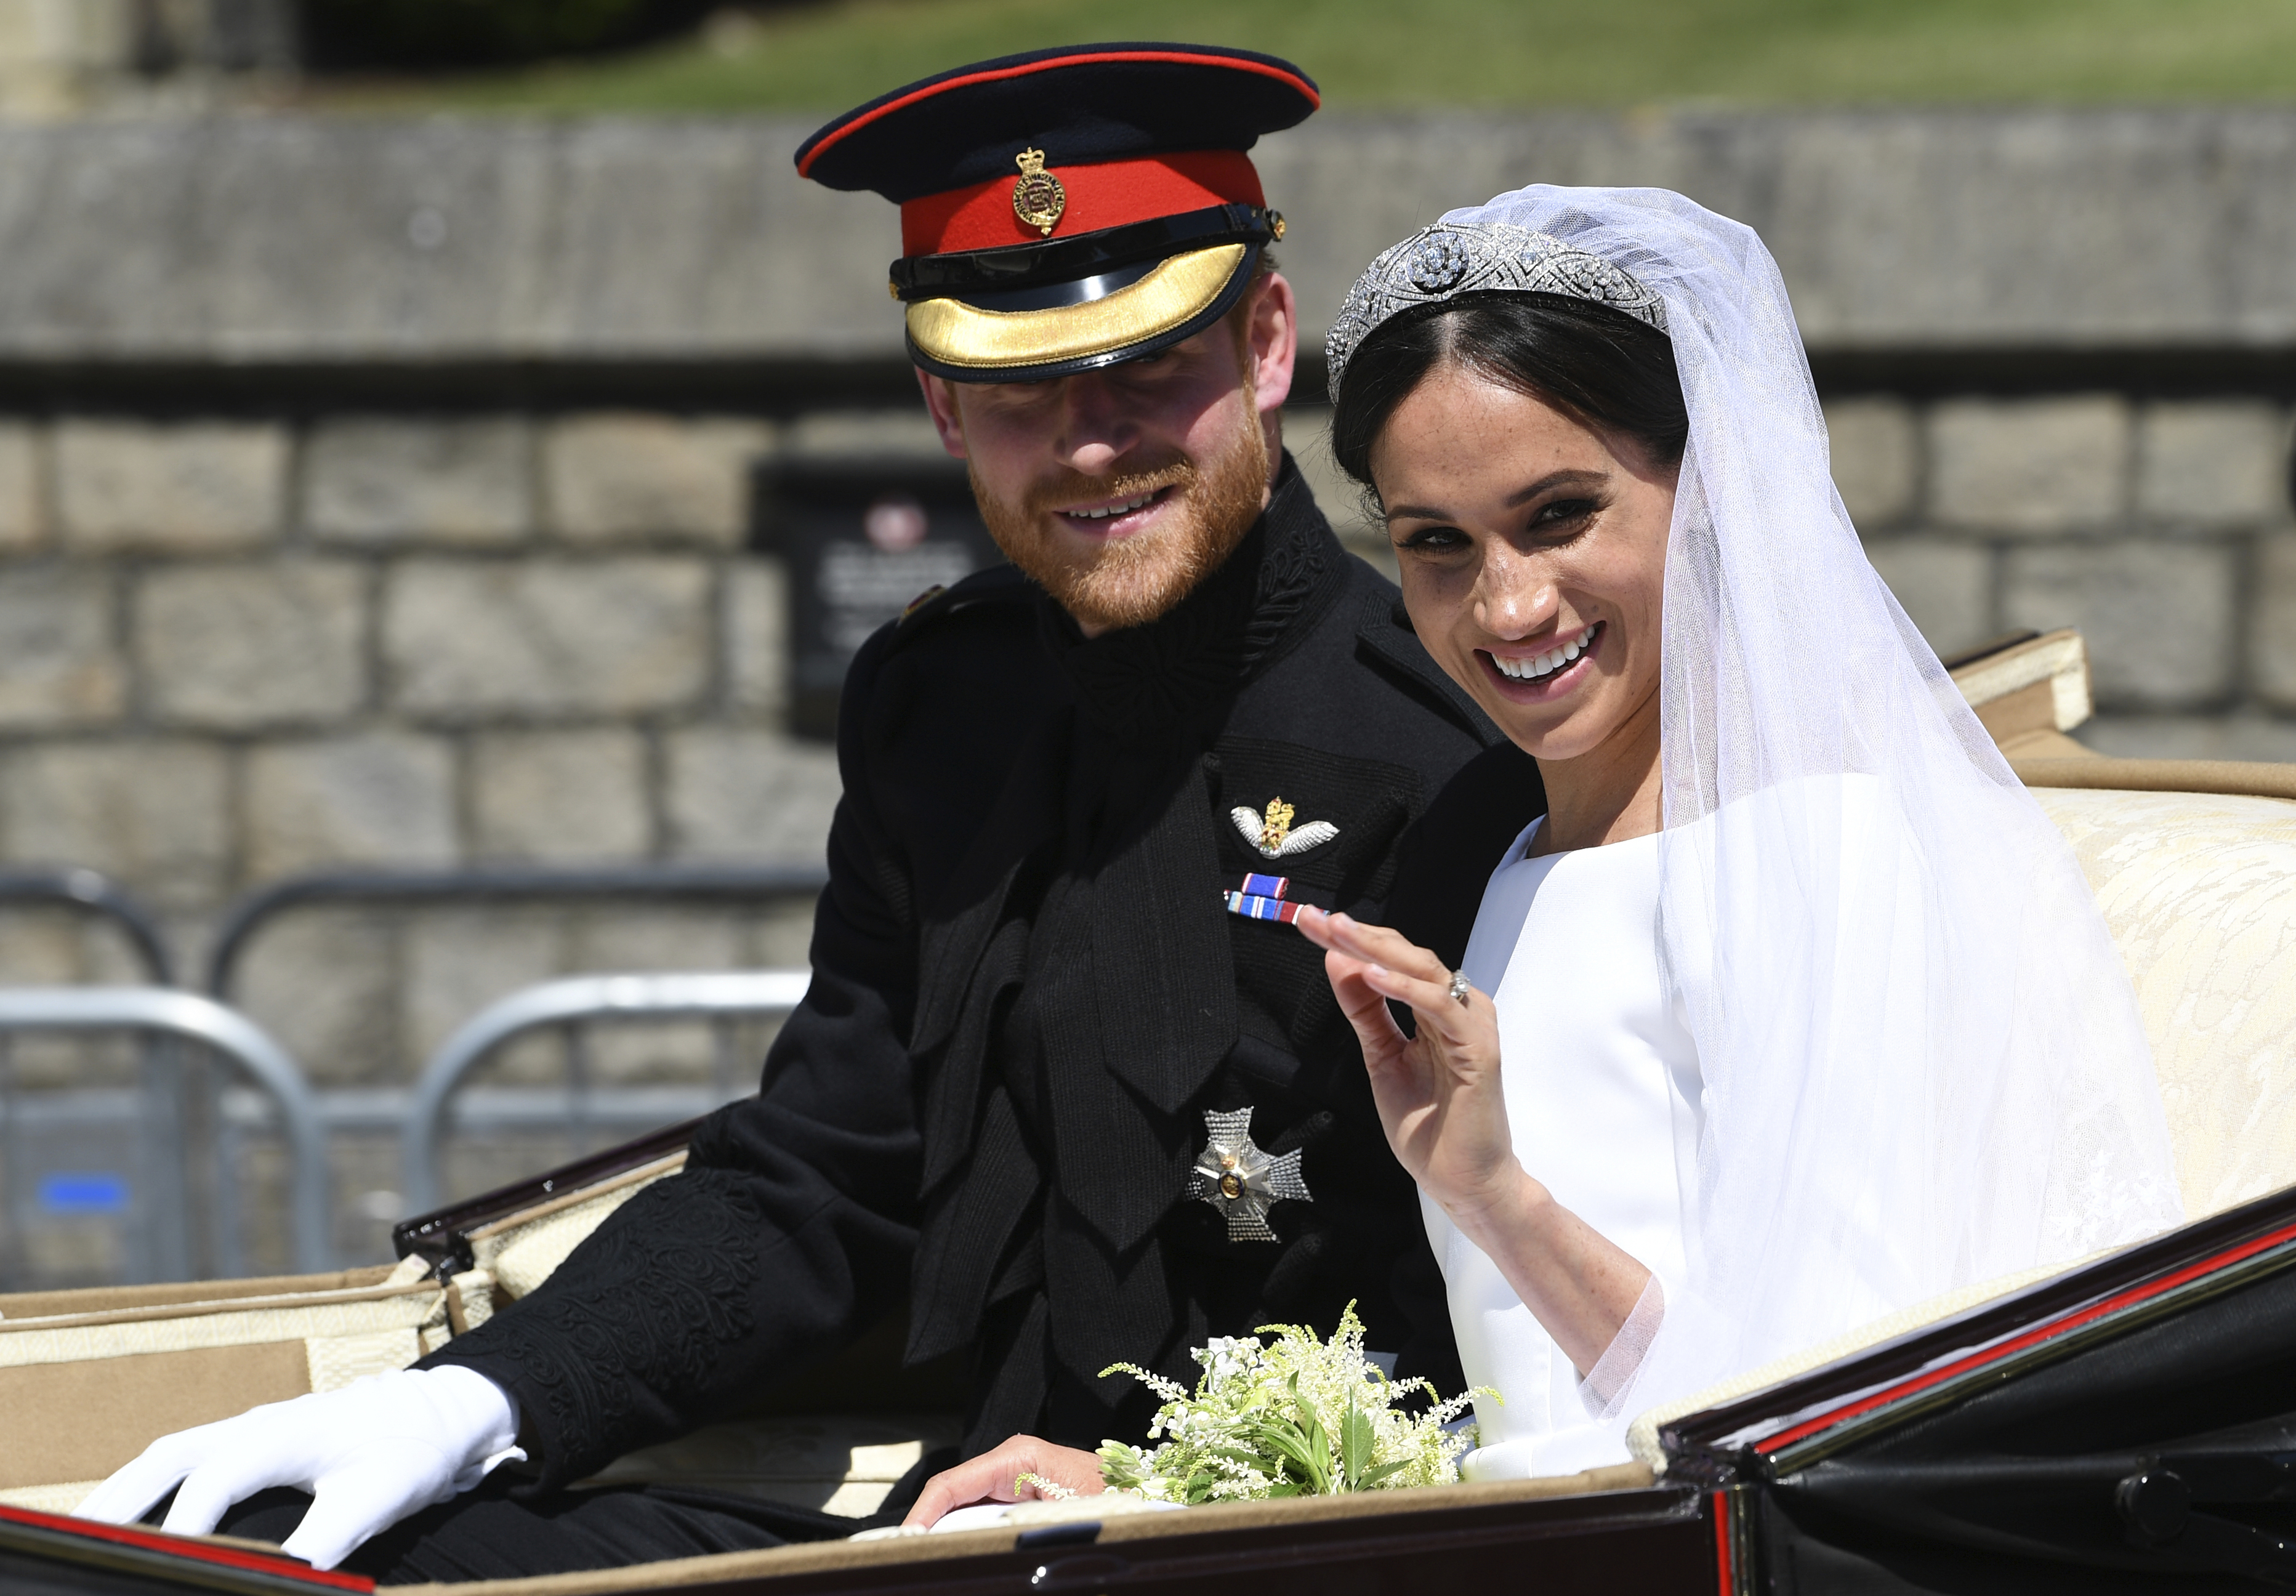 Prince Harry, Duke of Sussex and his wife Meghan Markle, Duchess of Sussex, wave from the Ascot Landau Carriage after their wedding ceremony. (Paul Ellis/pool photo via AP)